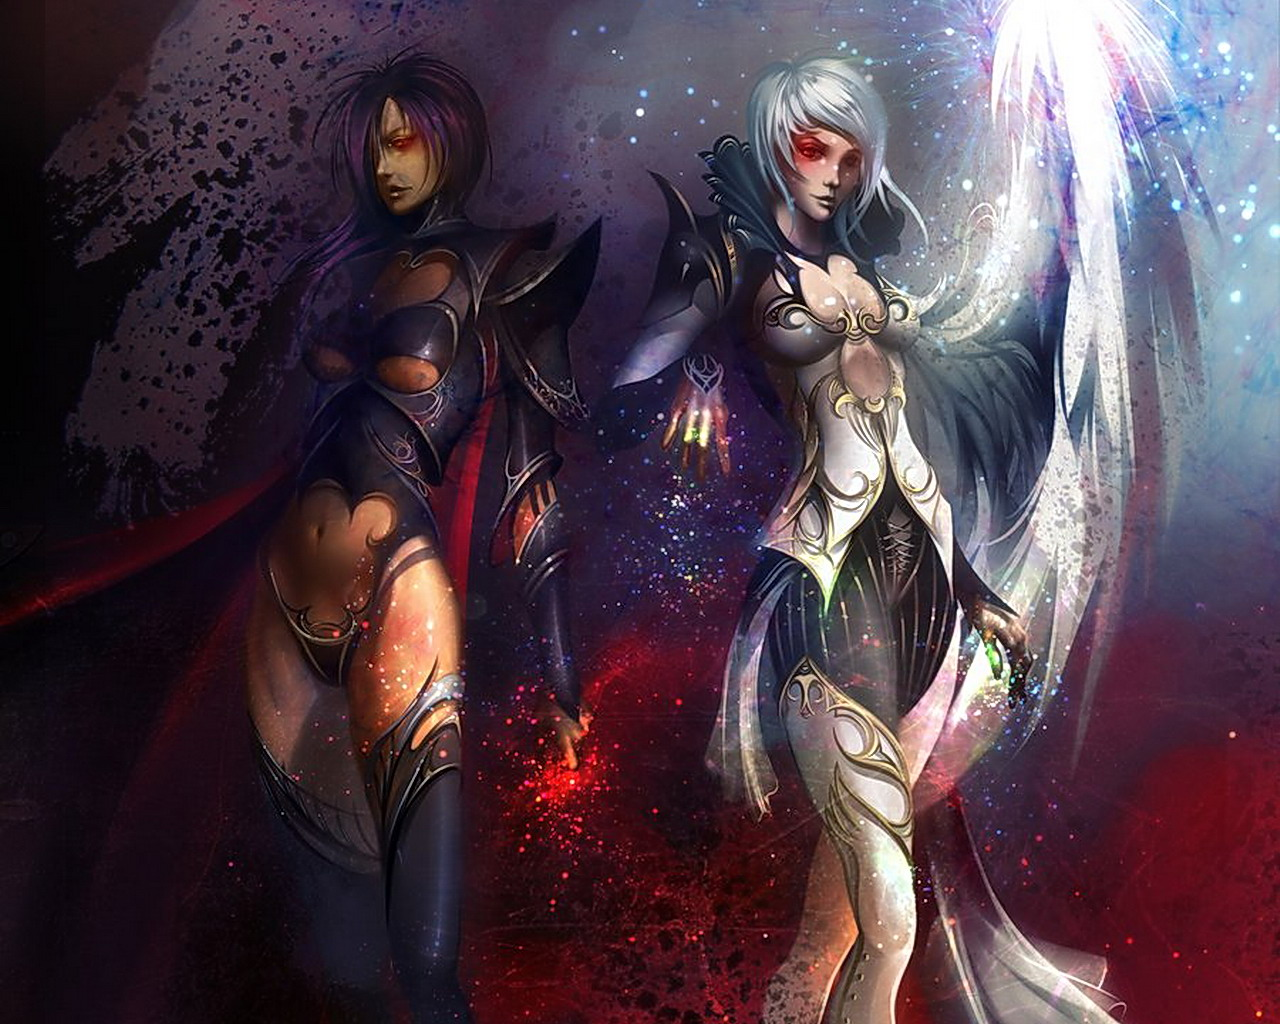 Micketo images good and evil warriors hd wallpaper and background photos